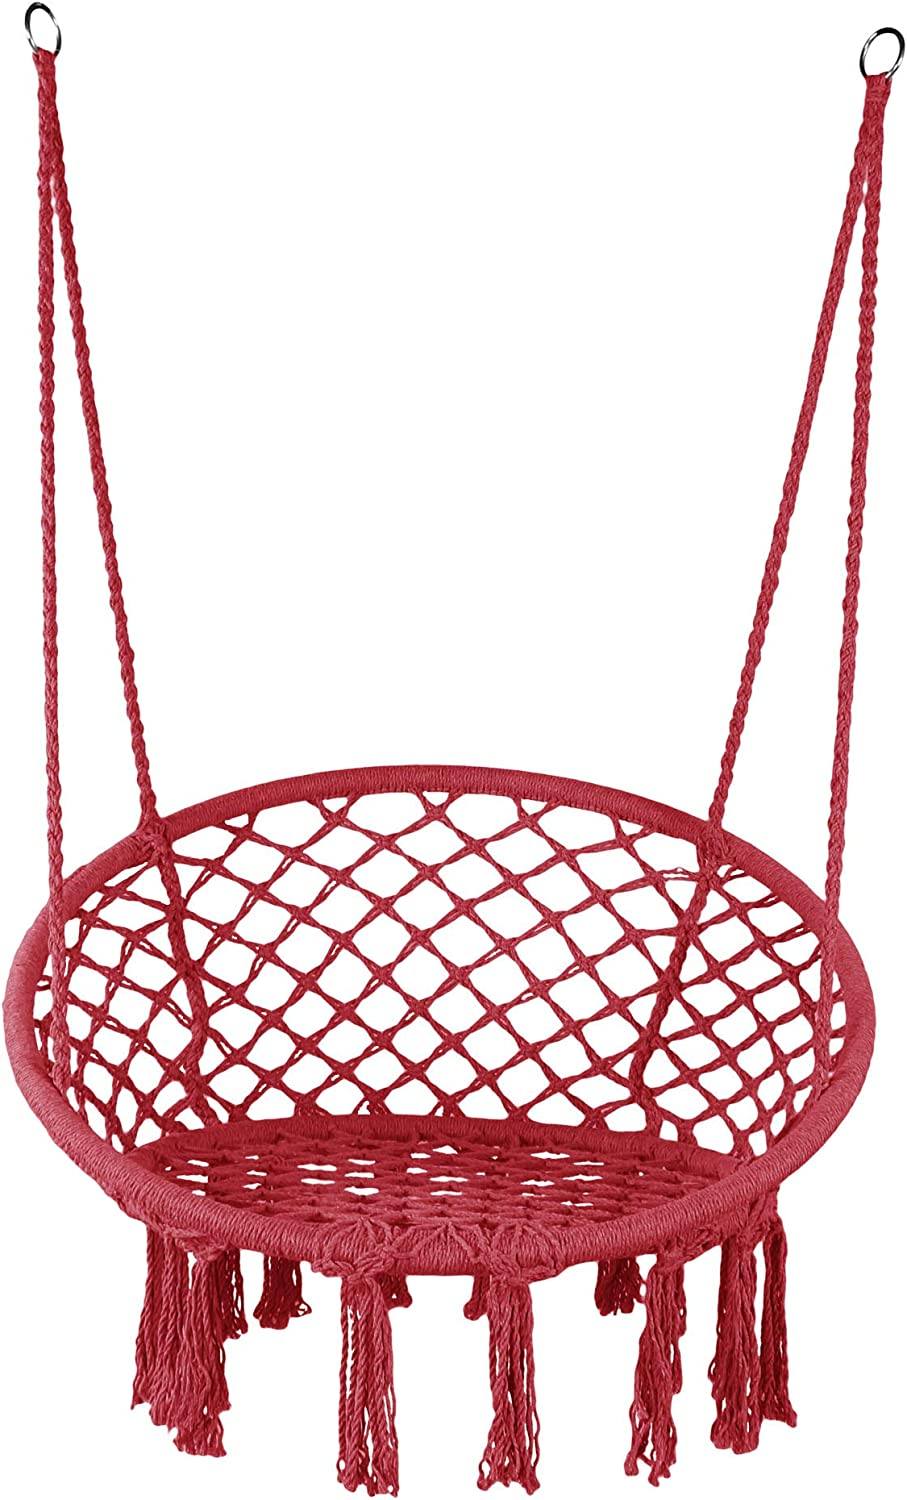 "LAZZO Hammock Chair Hanging Knitted Mesh Cotton Rope Macrame Swing, 260 Pounds Capacity, 23.6"" Seat Width,for Bedroom, Outdoors, Garden, Patio, Yard. Child, Girl, Adult(Red)"